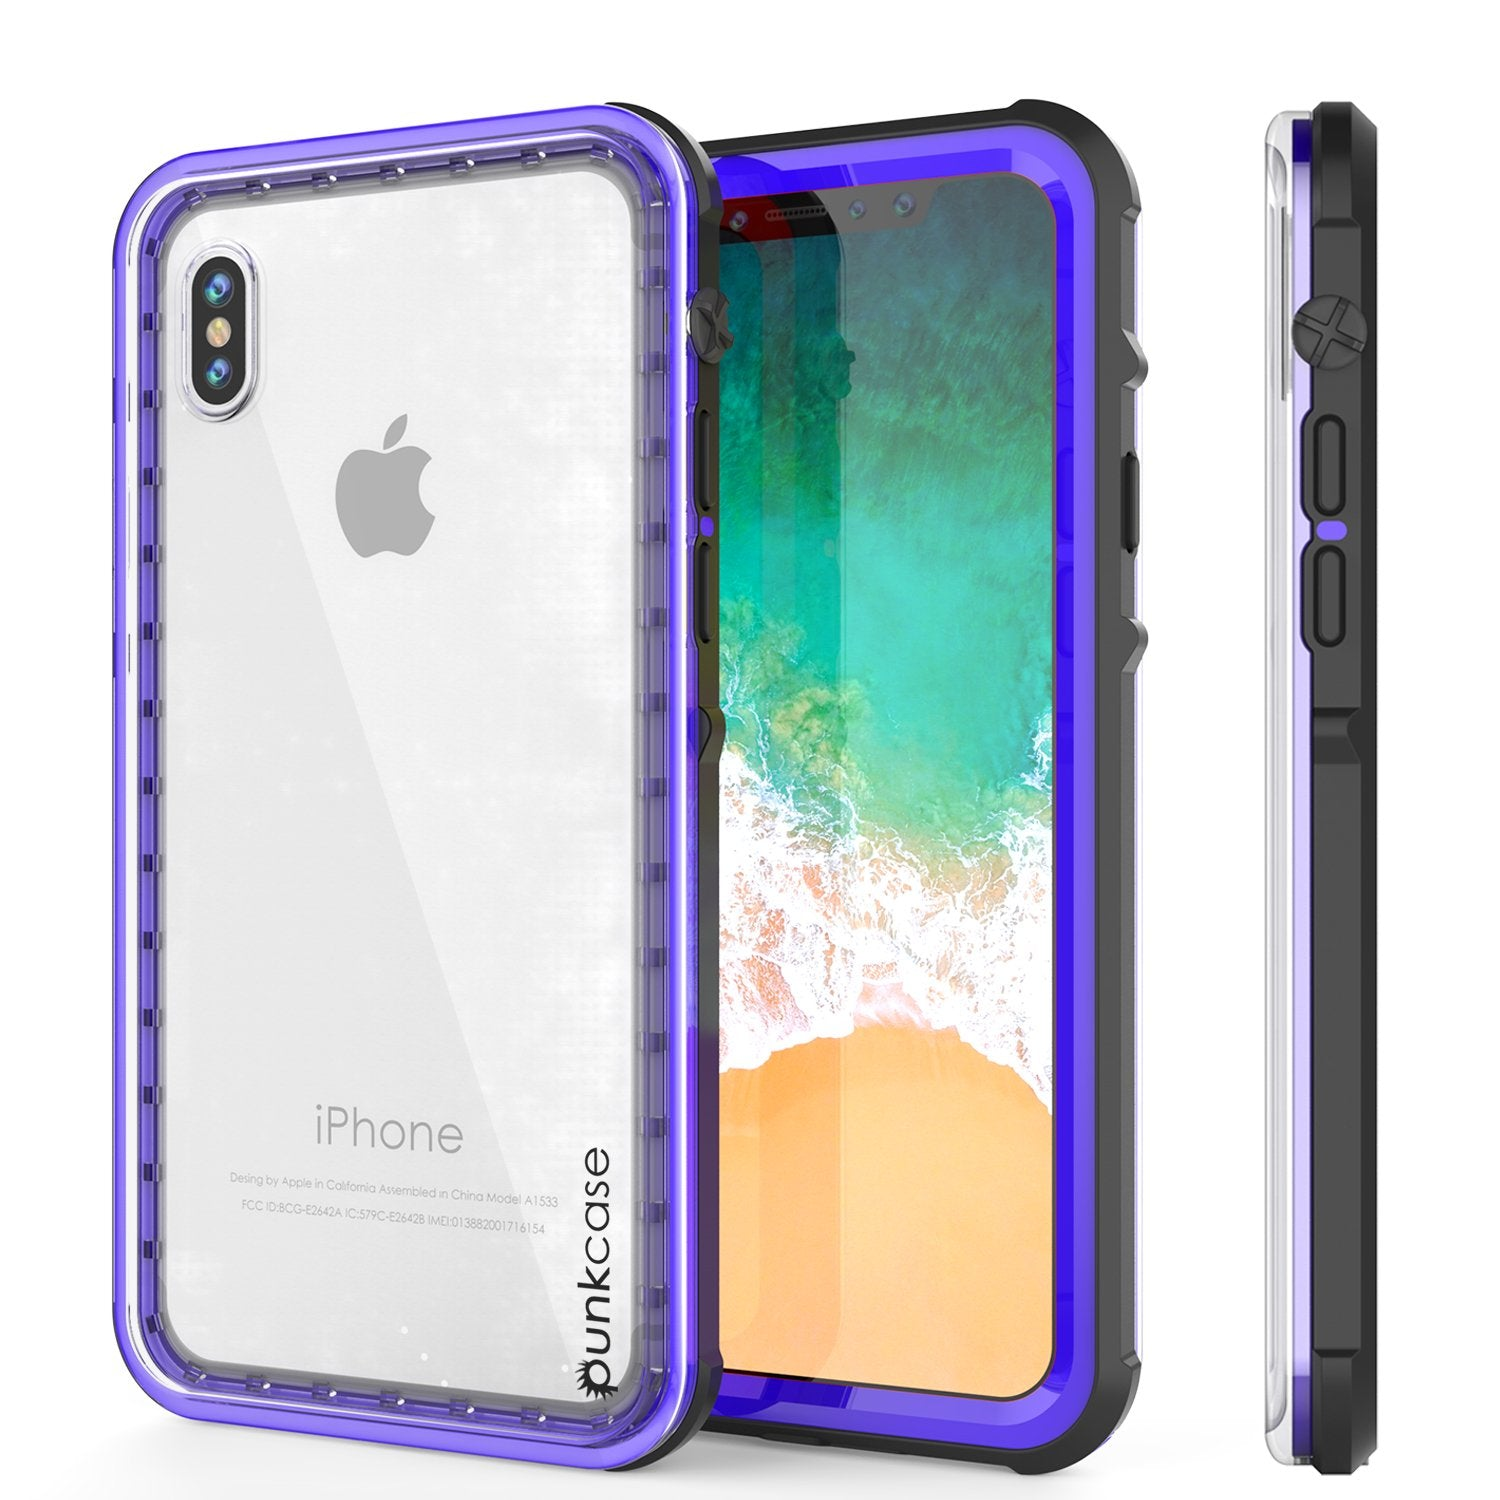 iPhone XS Case, PUNKCase [CRYSTAL SERIES] Protective IP68 Certified Cover [Purple]